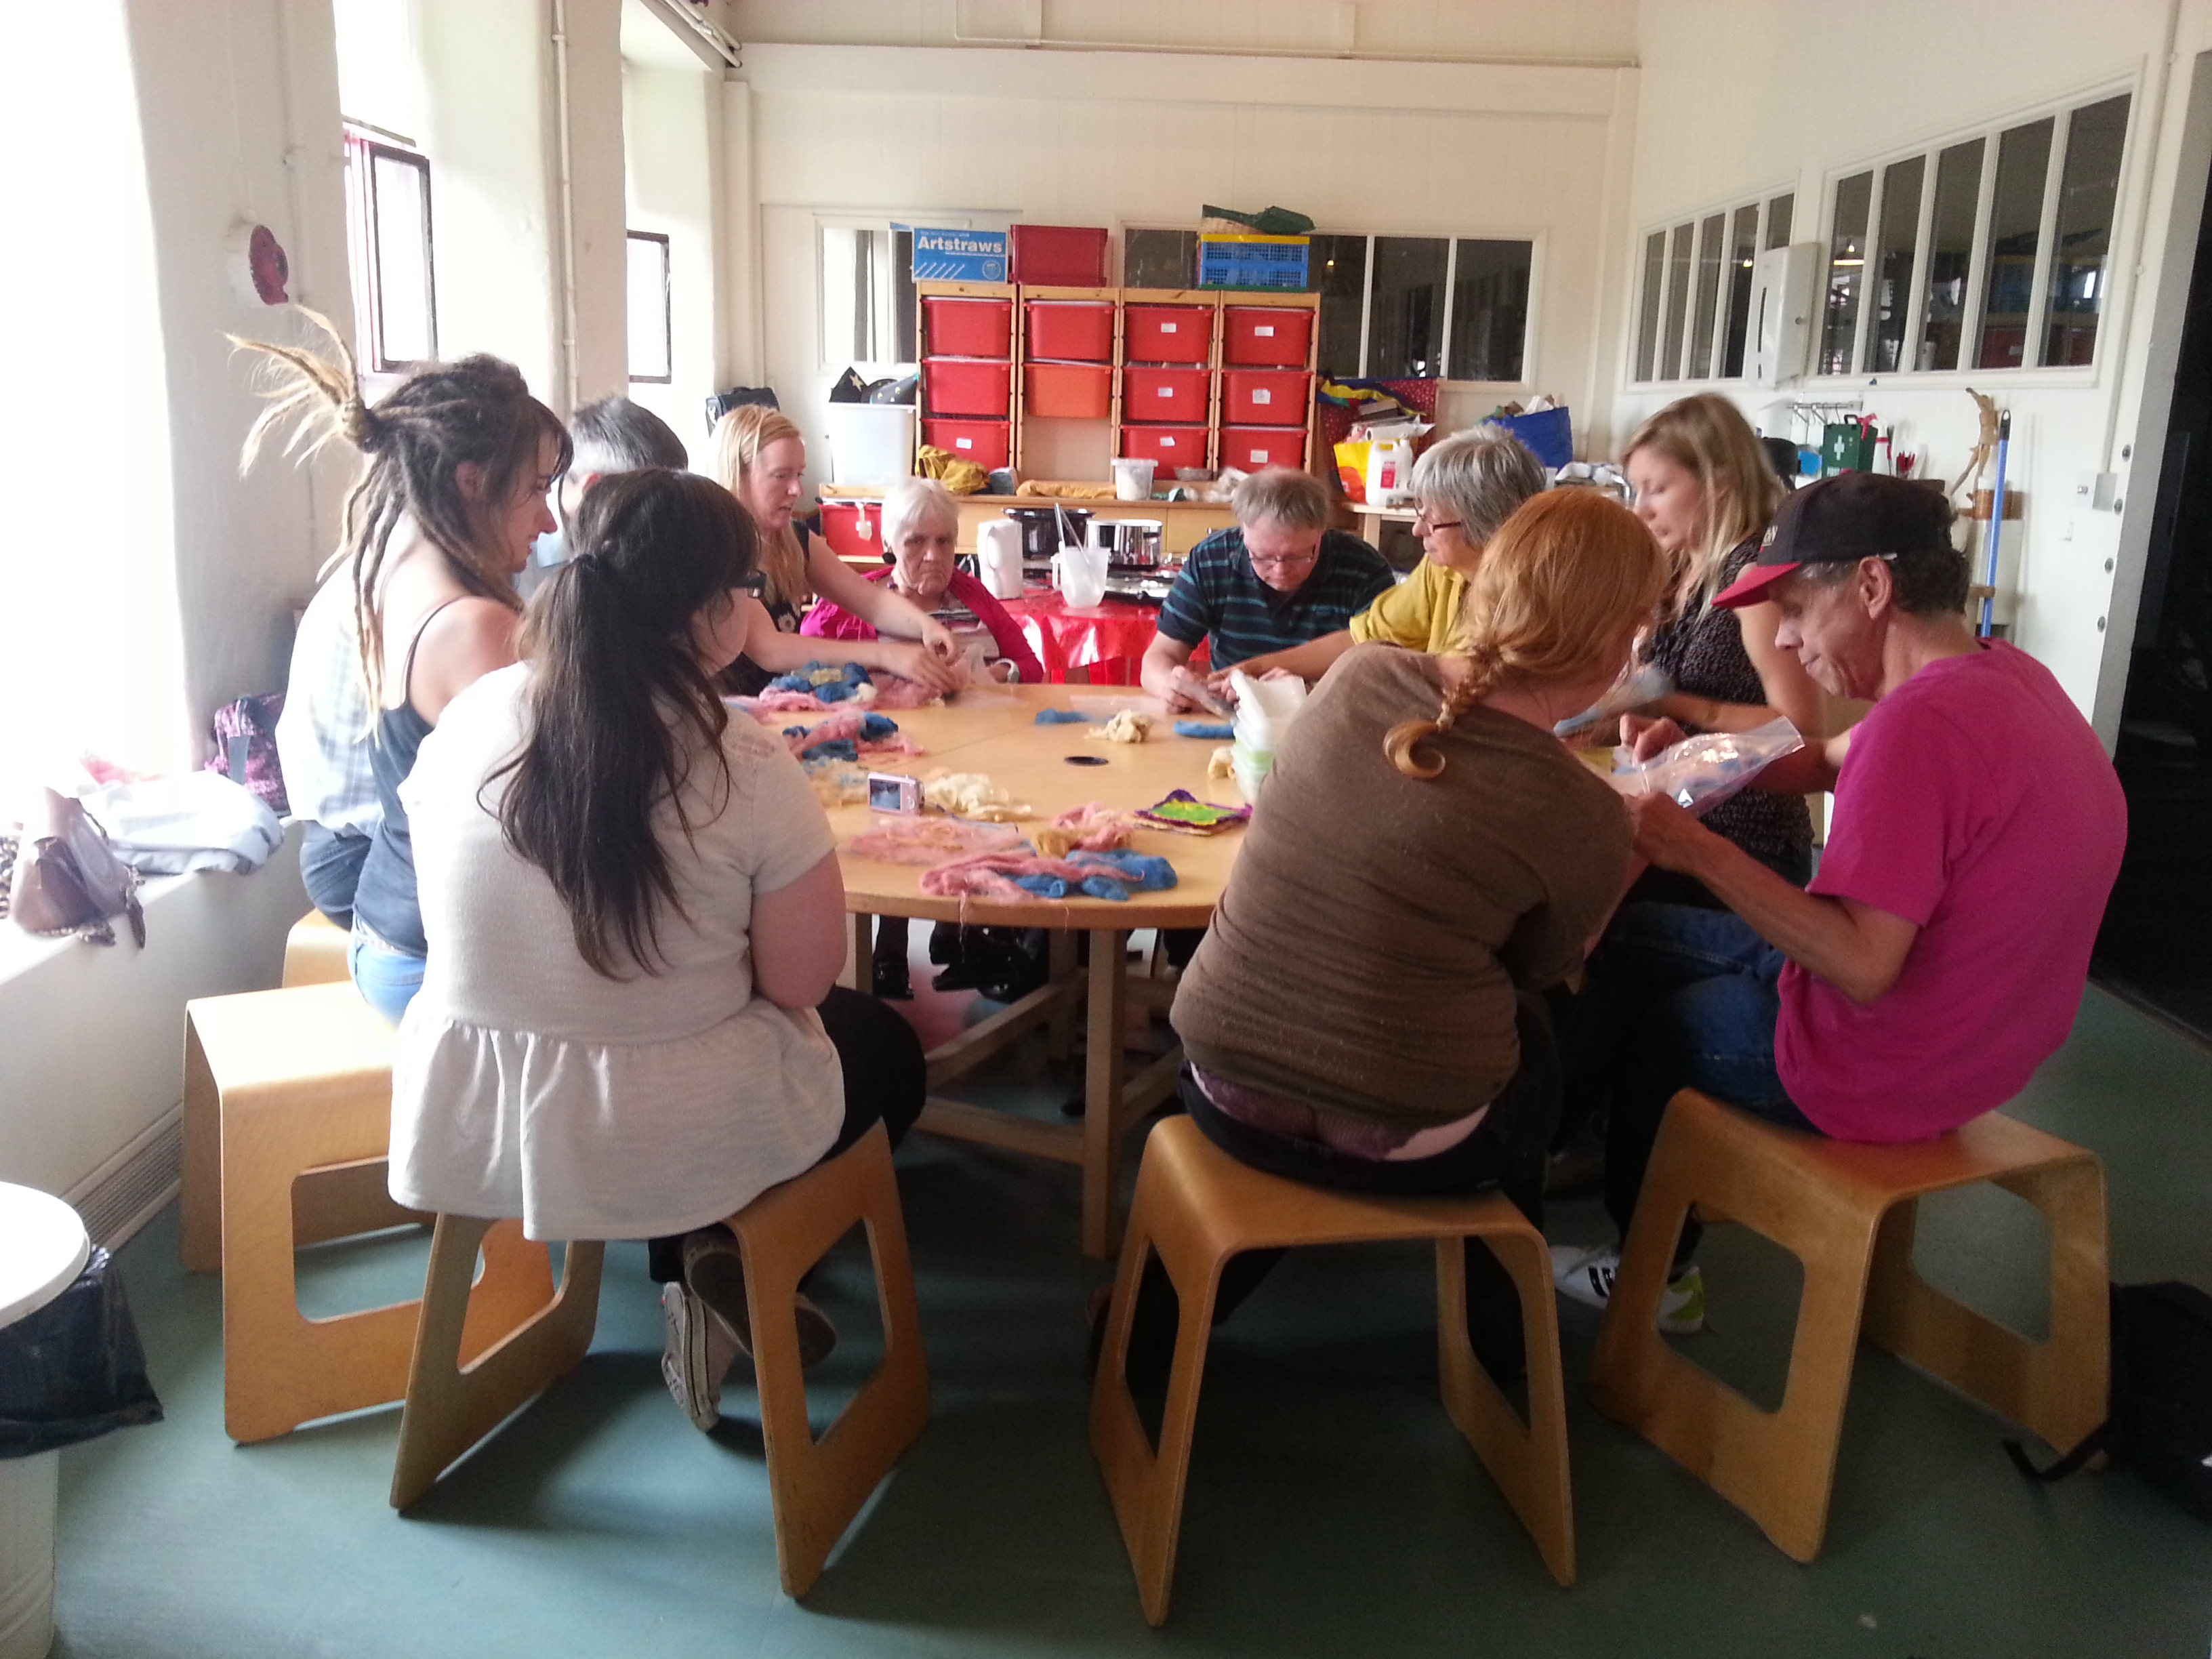 Community felting session with Debbie Tomkies of Making Futures